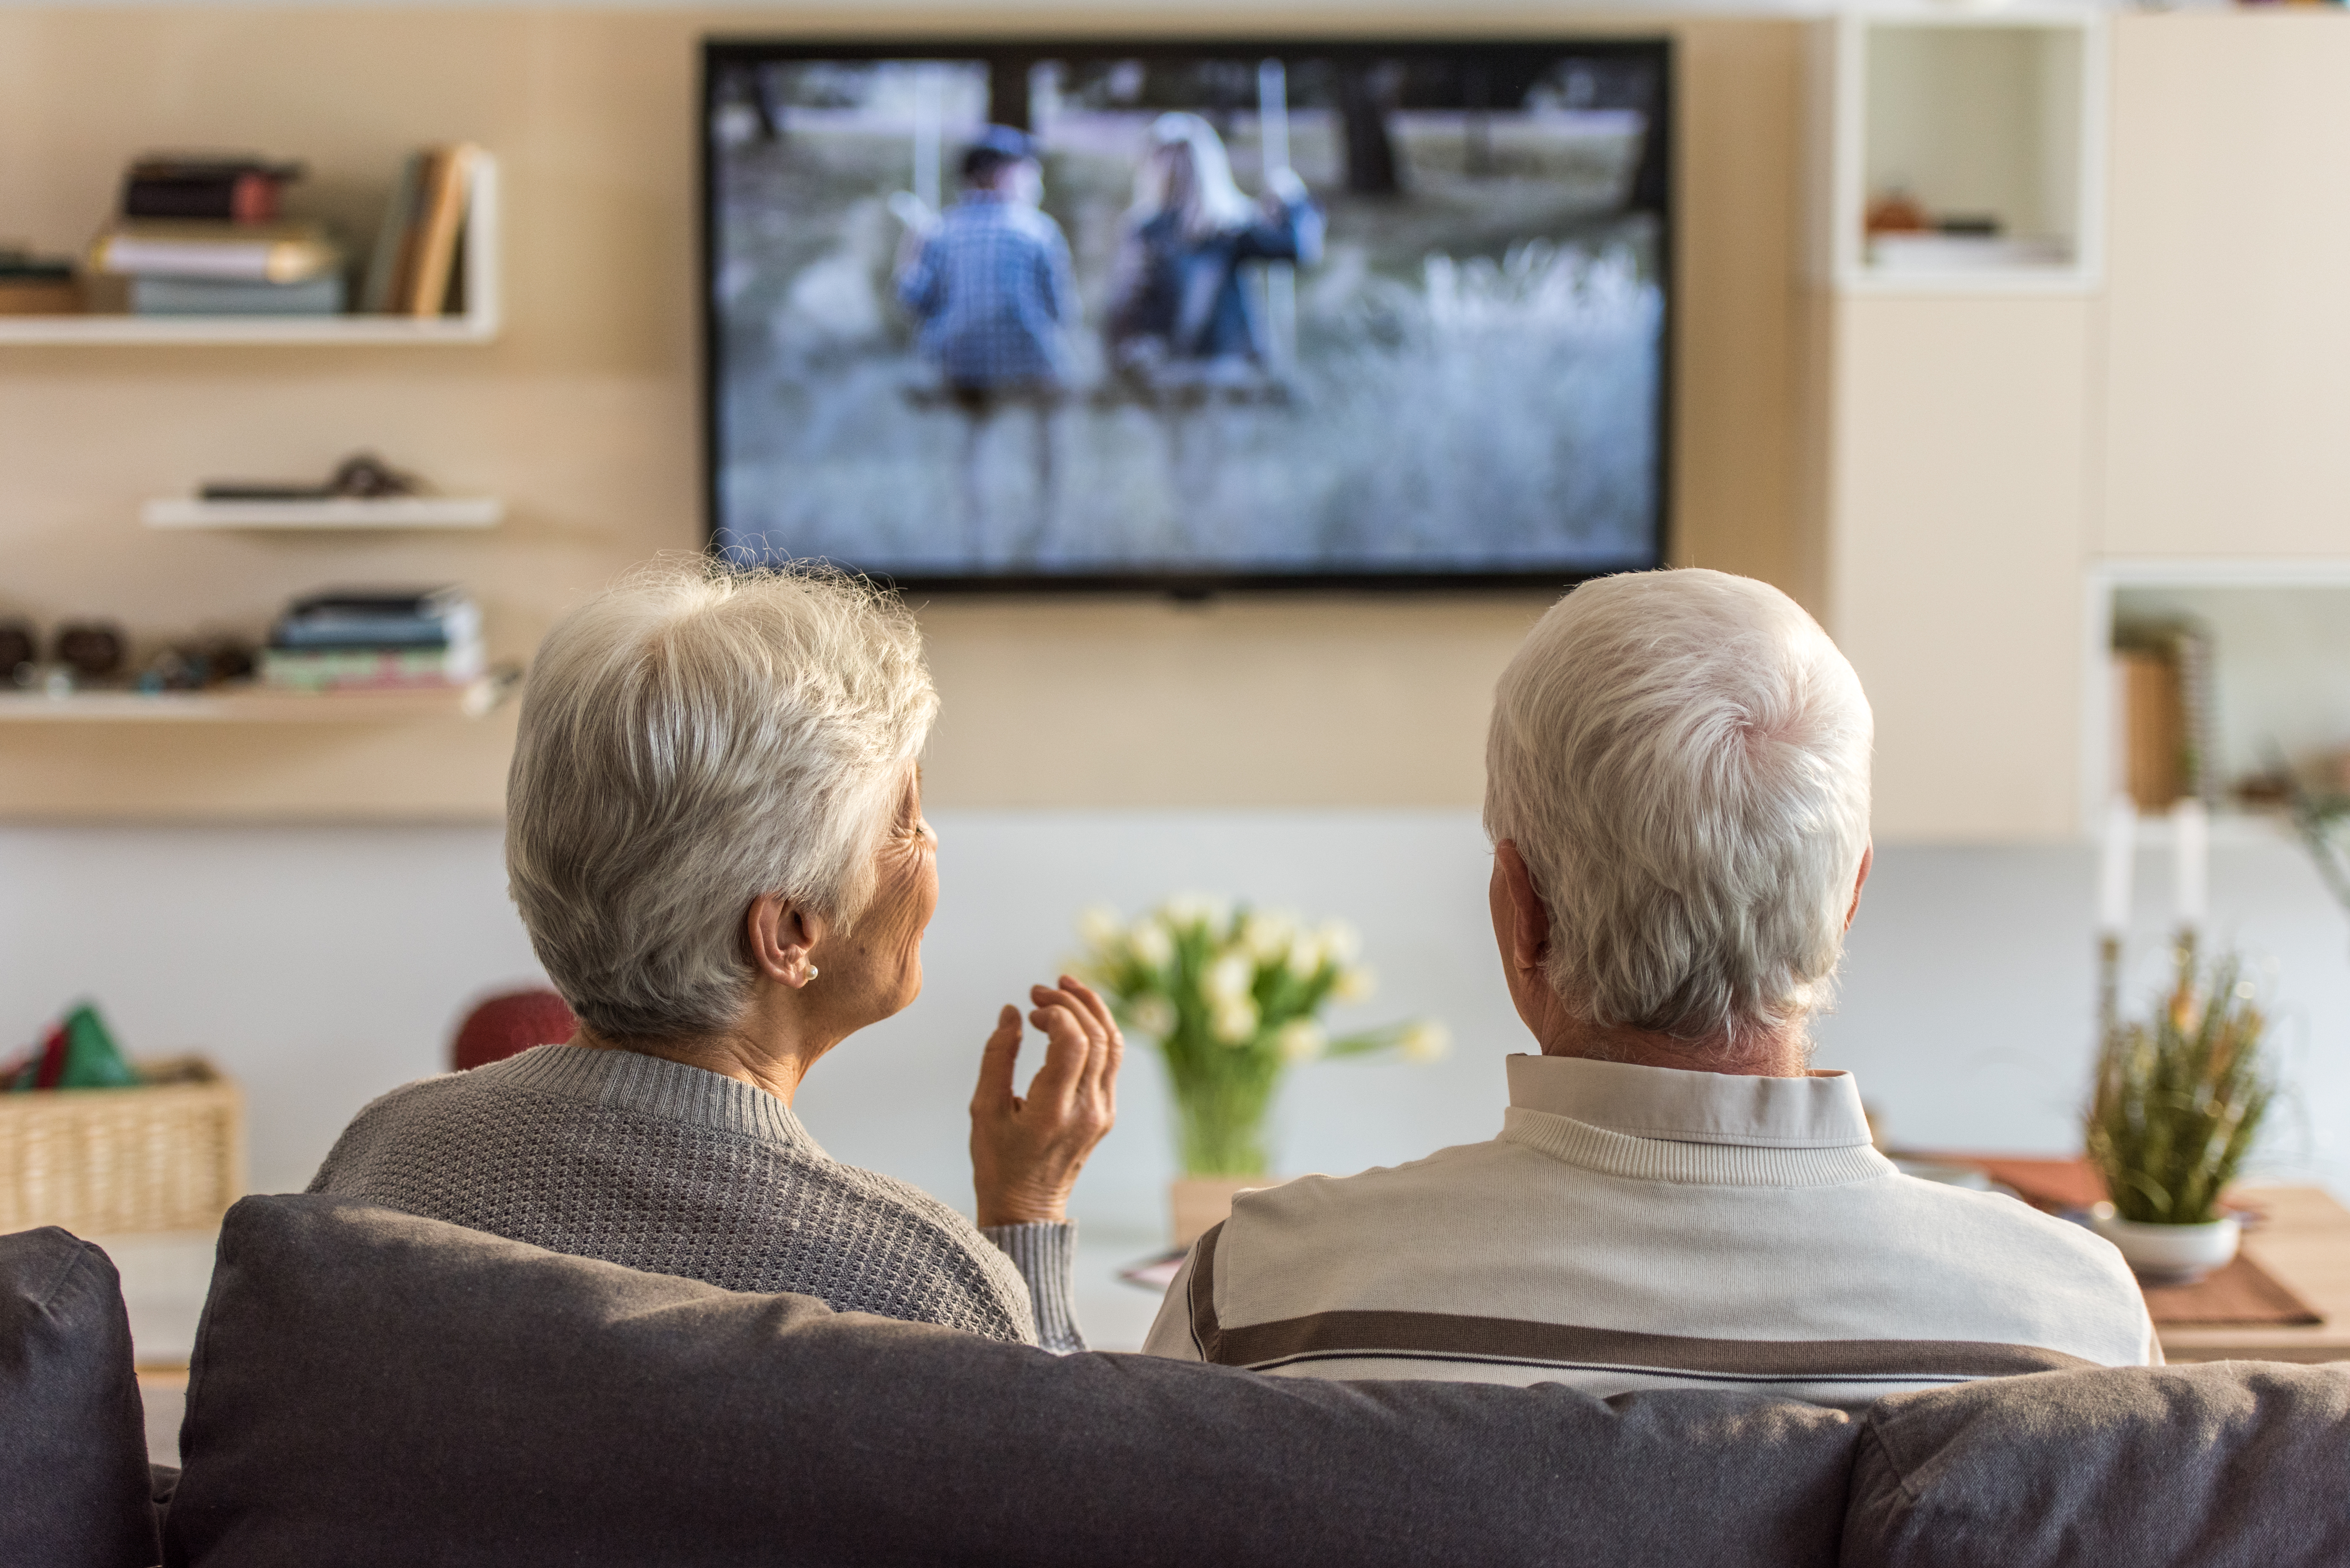 Senior couple sitting on sofa and watching television show at home.